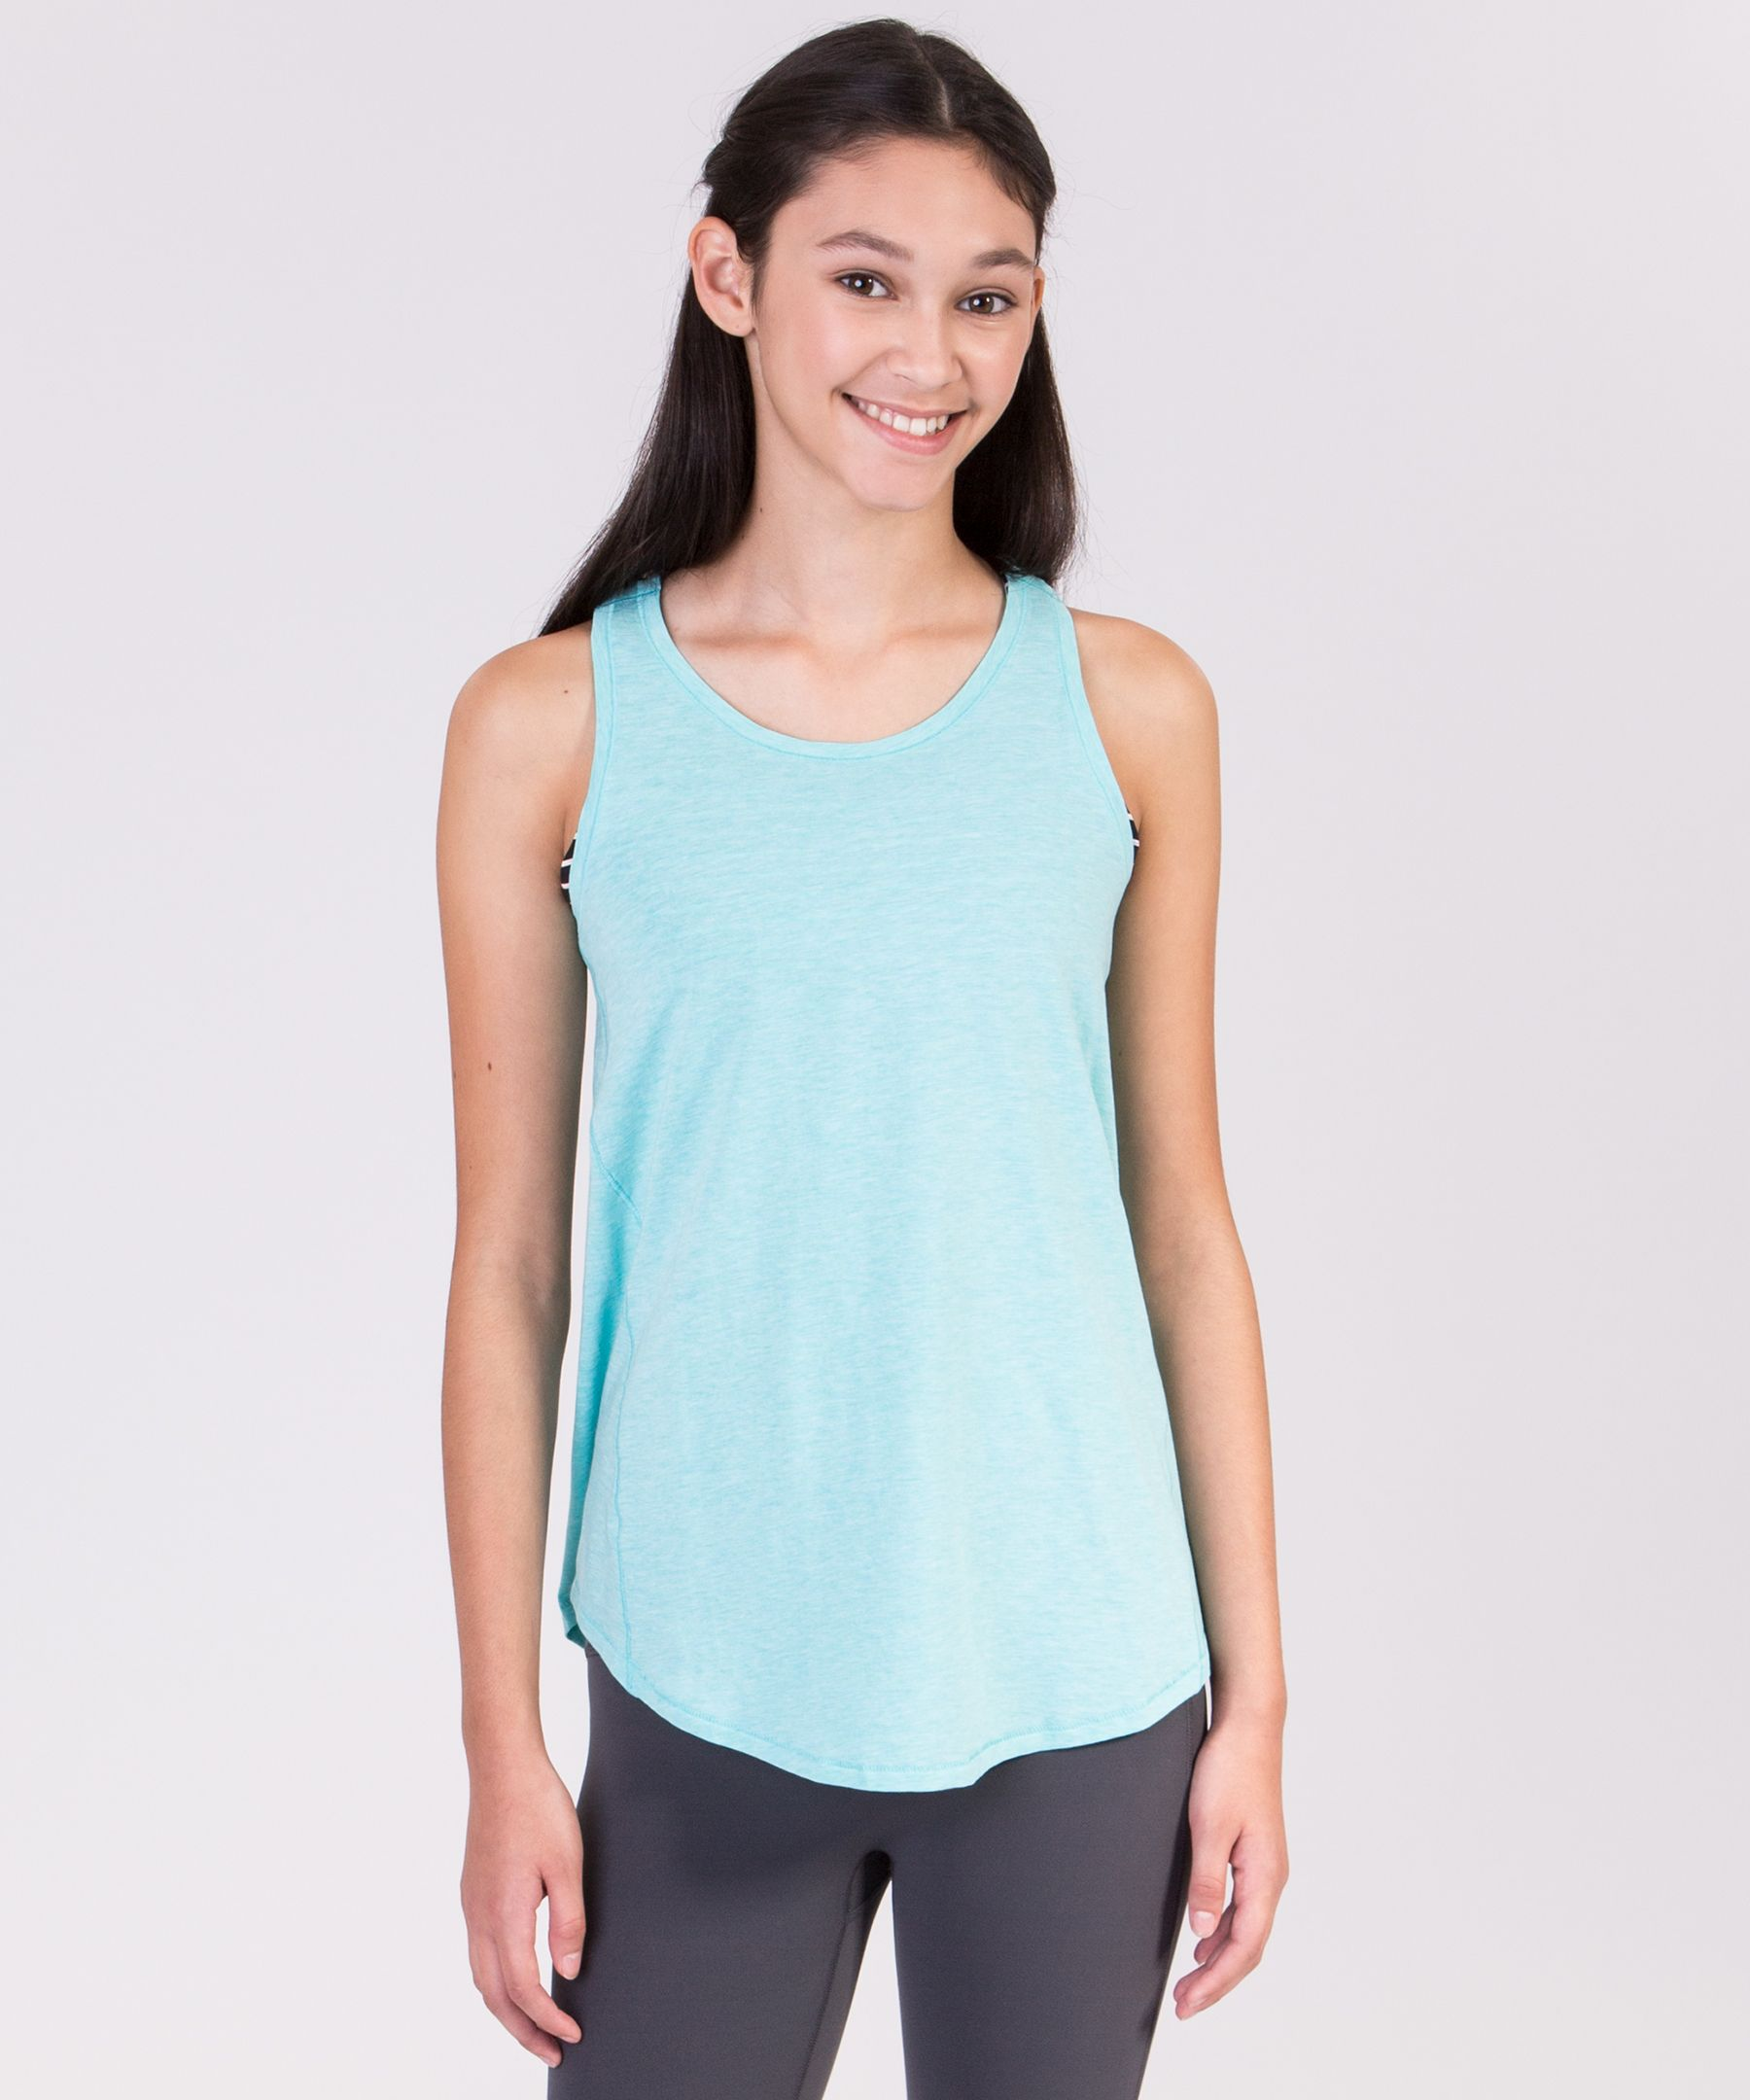 Quiet Moments Tank - Girls New | Tuggl